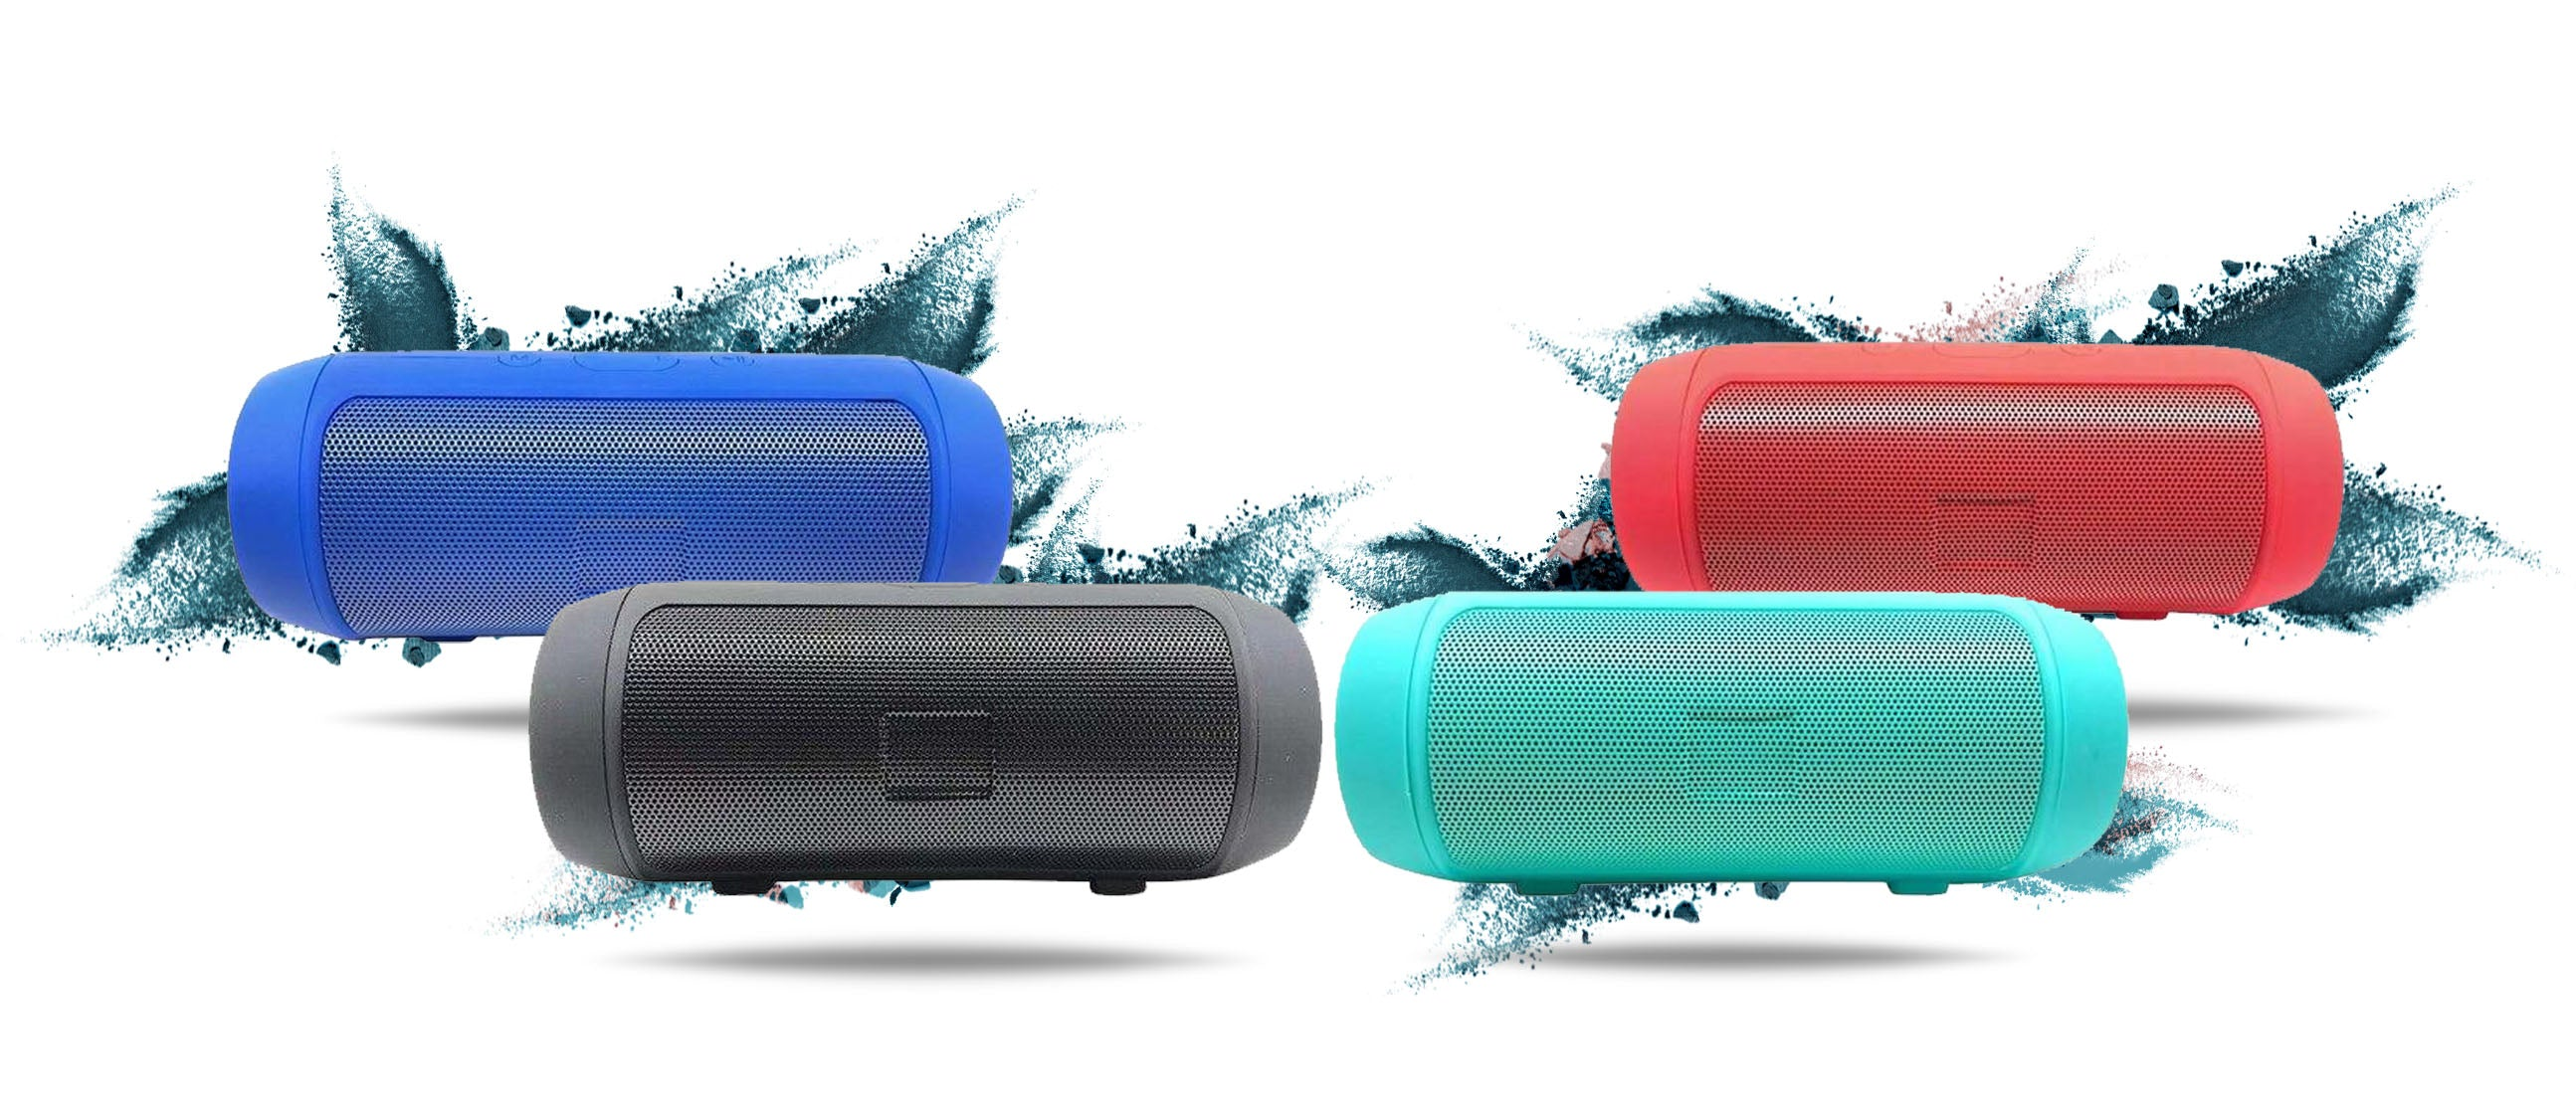 YZ Premiums speakers free shipping bluetooth portable bass trending speakers